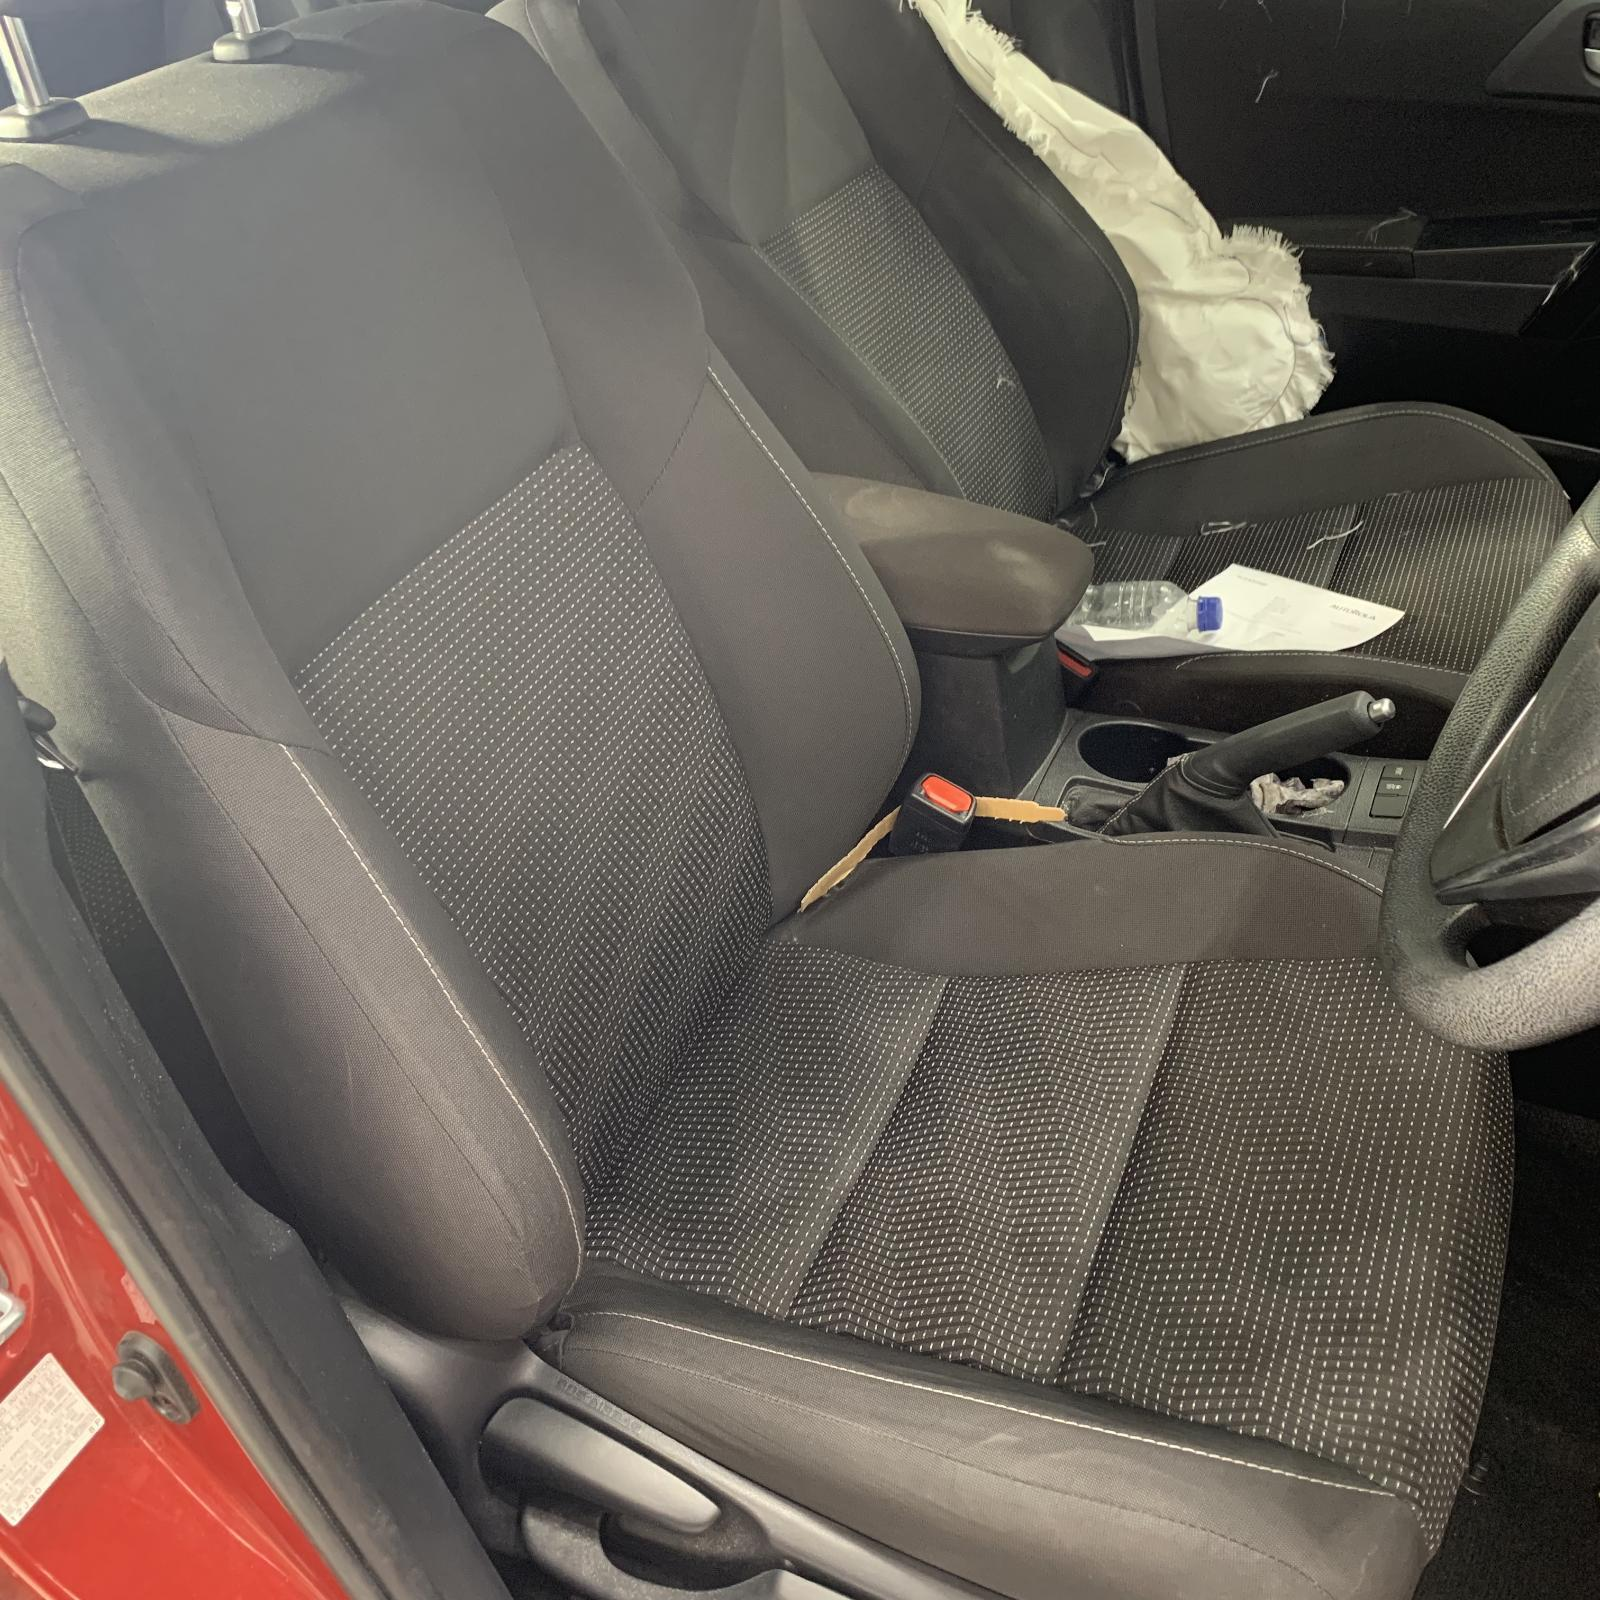 TOYOTA COROLLA, Front Seat, RH FRONT, ZRE182R/ZWE186R, HATCH, CLOTH, ASCENT/ASCENT SPORT/HYBRID, 03/15-